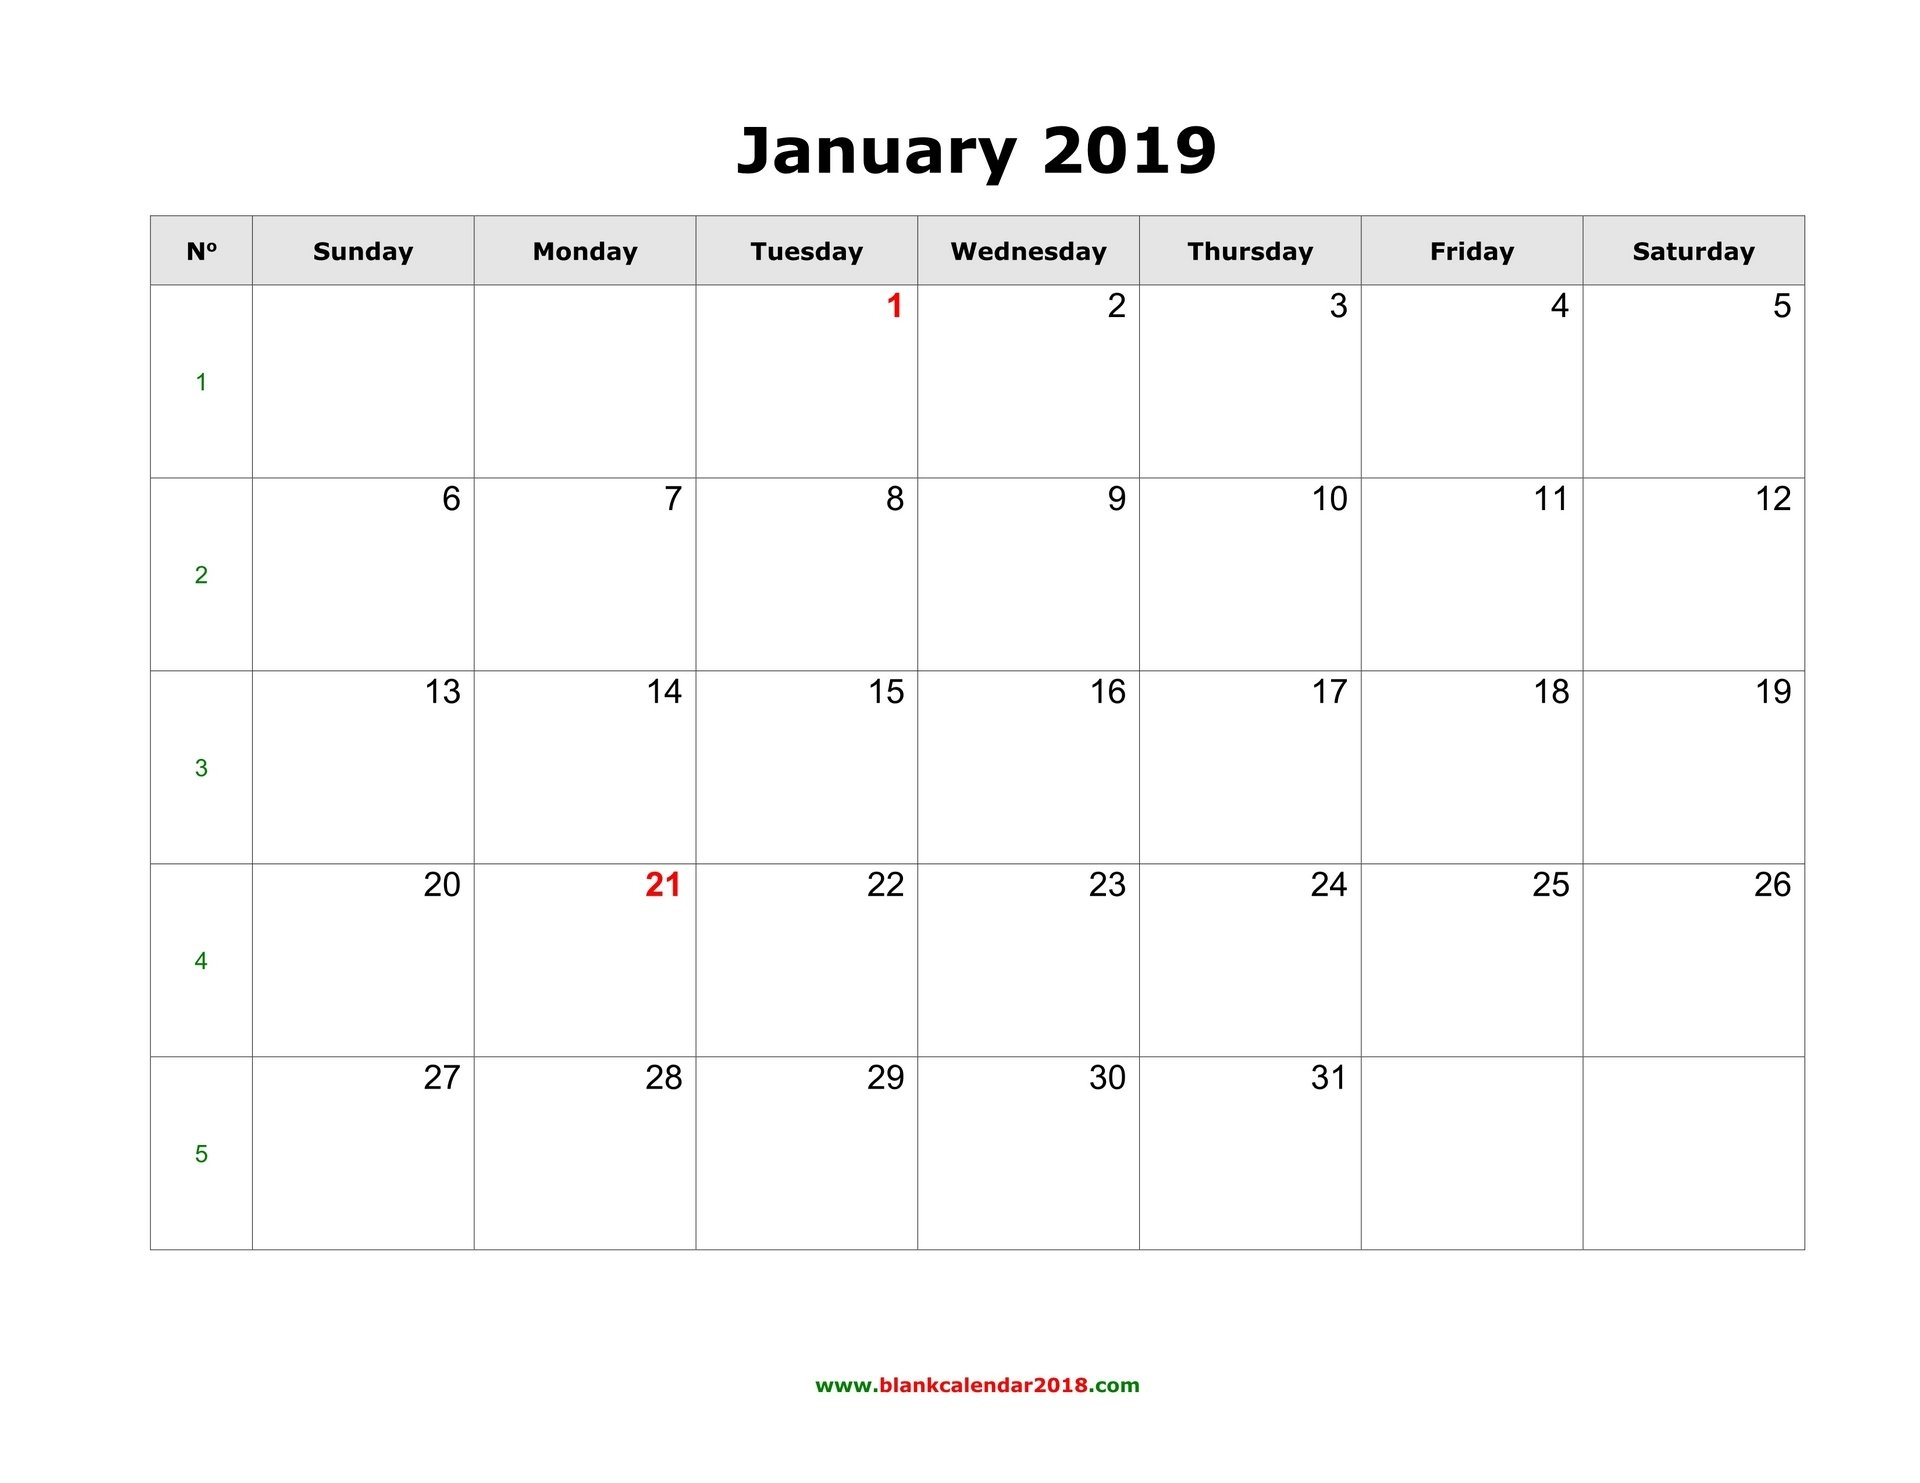 Blank Calendar For January 2019 Calendar 2019 January To March